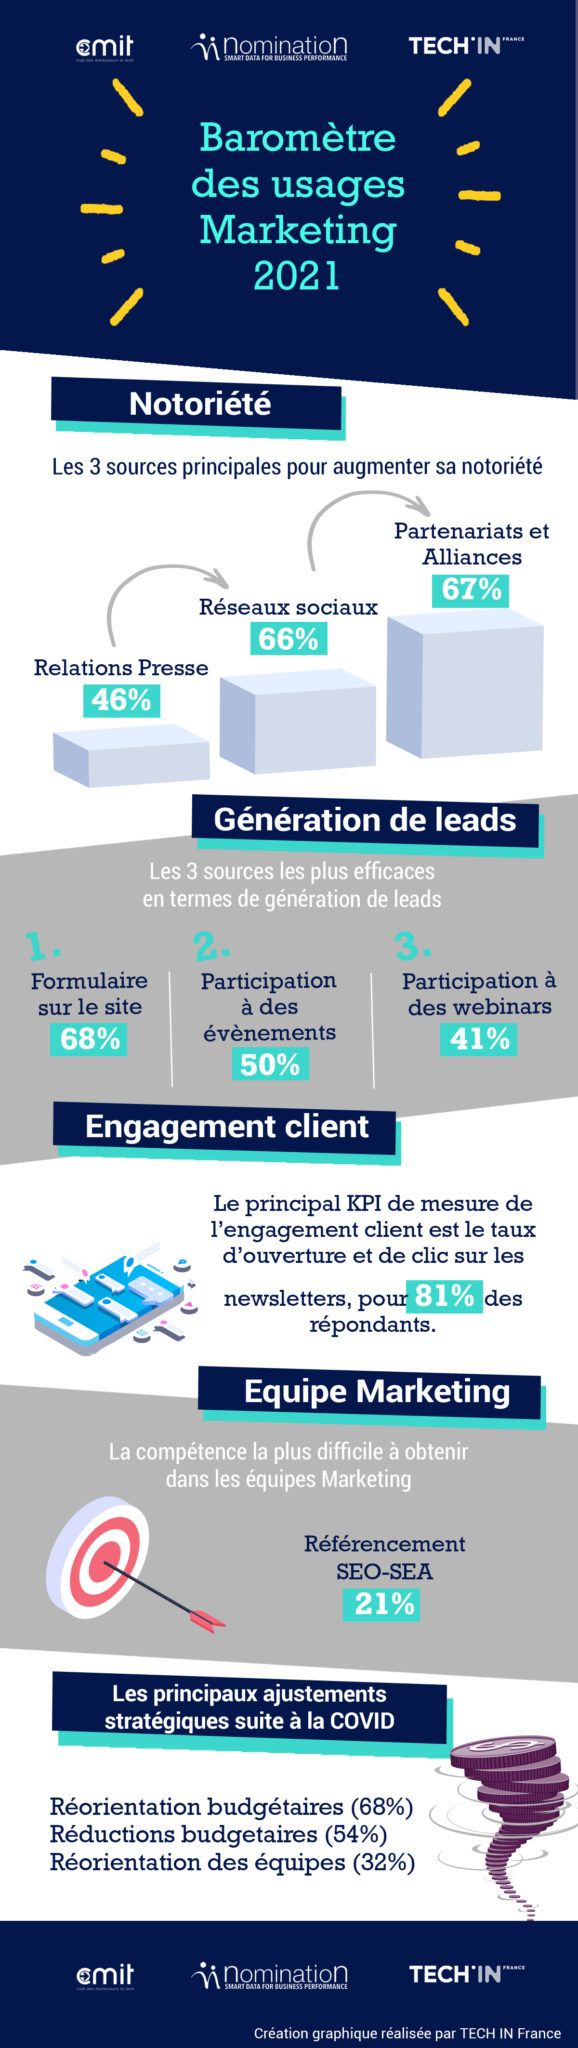 Baromètre des Usages Marketing 2021 en B to B